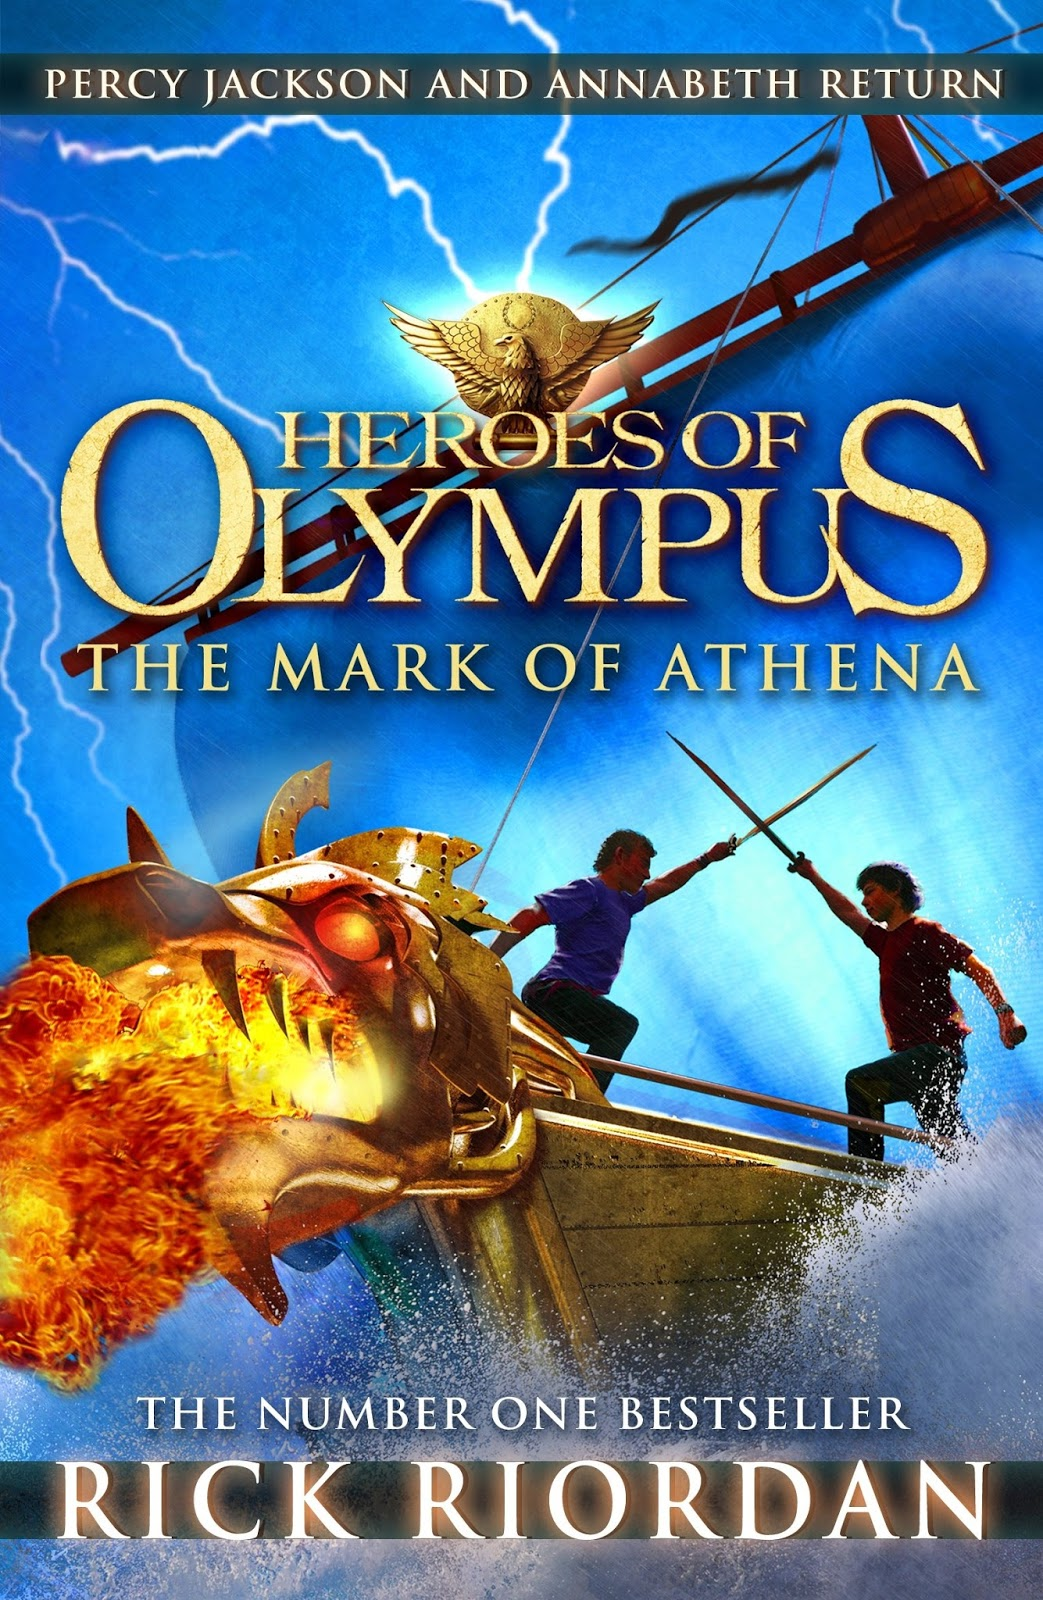 Rick Riordan -The Heroes of Olympus 3 - The Mark of Athena